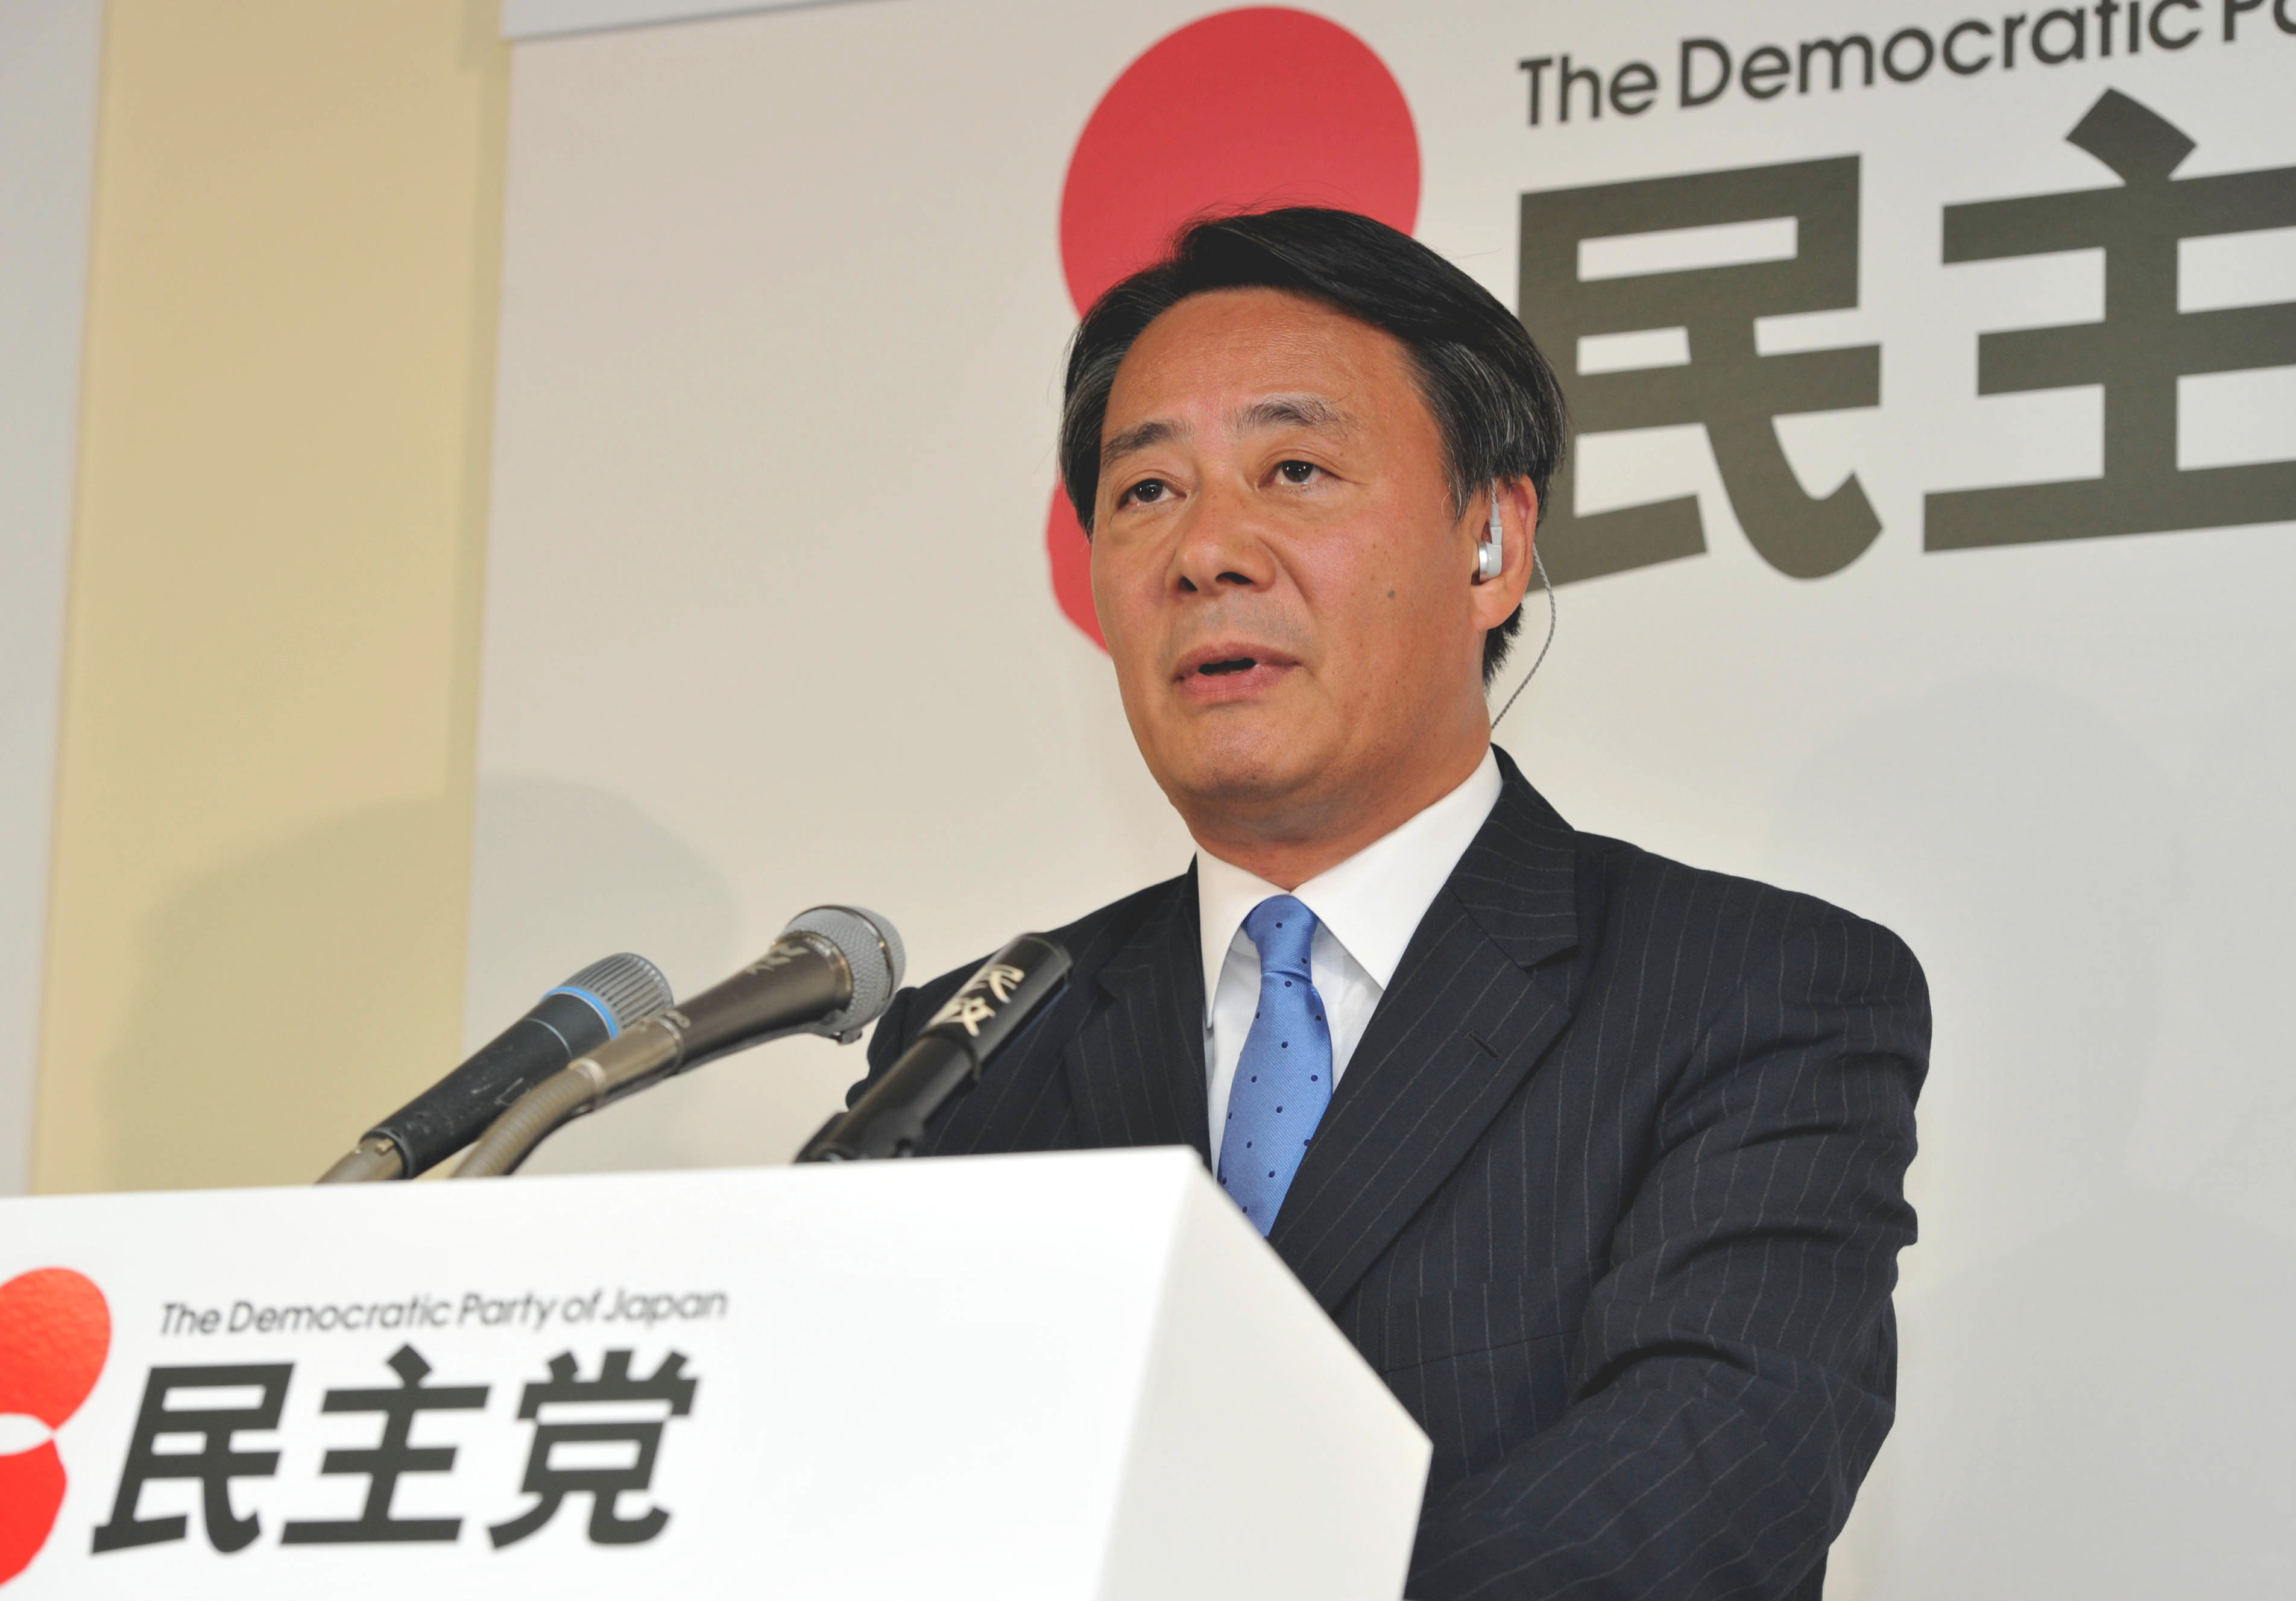 Sifting the ruins: Democratic Party of Japan President Banri Kaieda faces reporters in Tokyo on Sunday night, after the party's devastating defeat in the Upper House poll. | YOSHIAKI MIURA